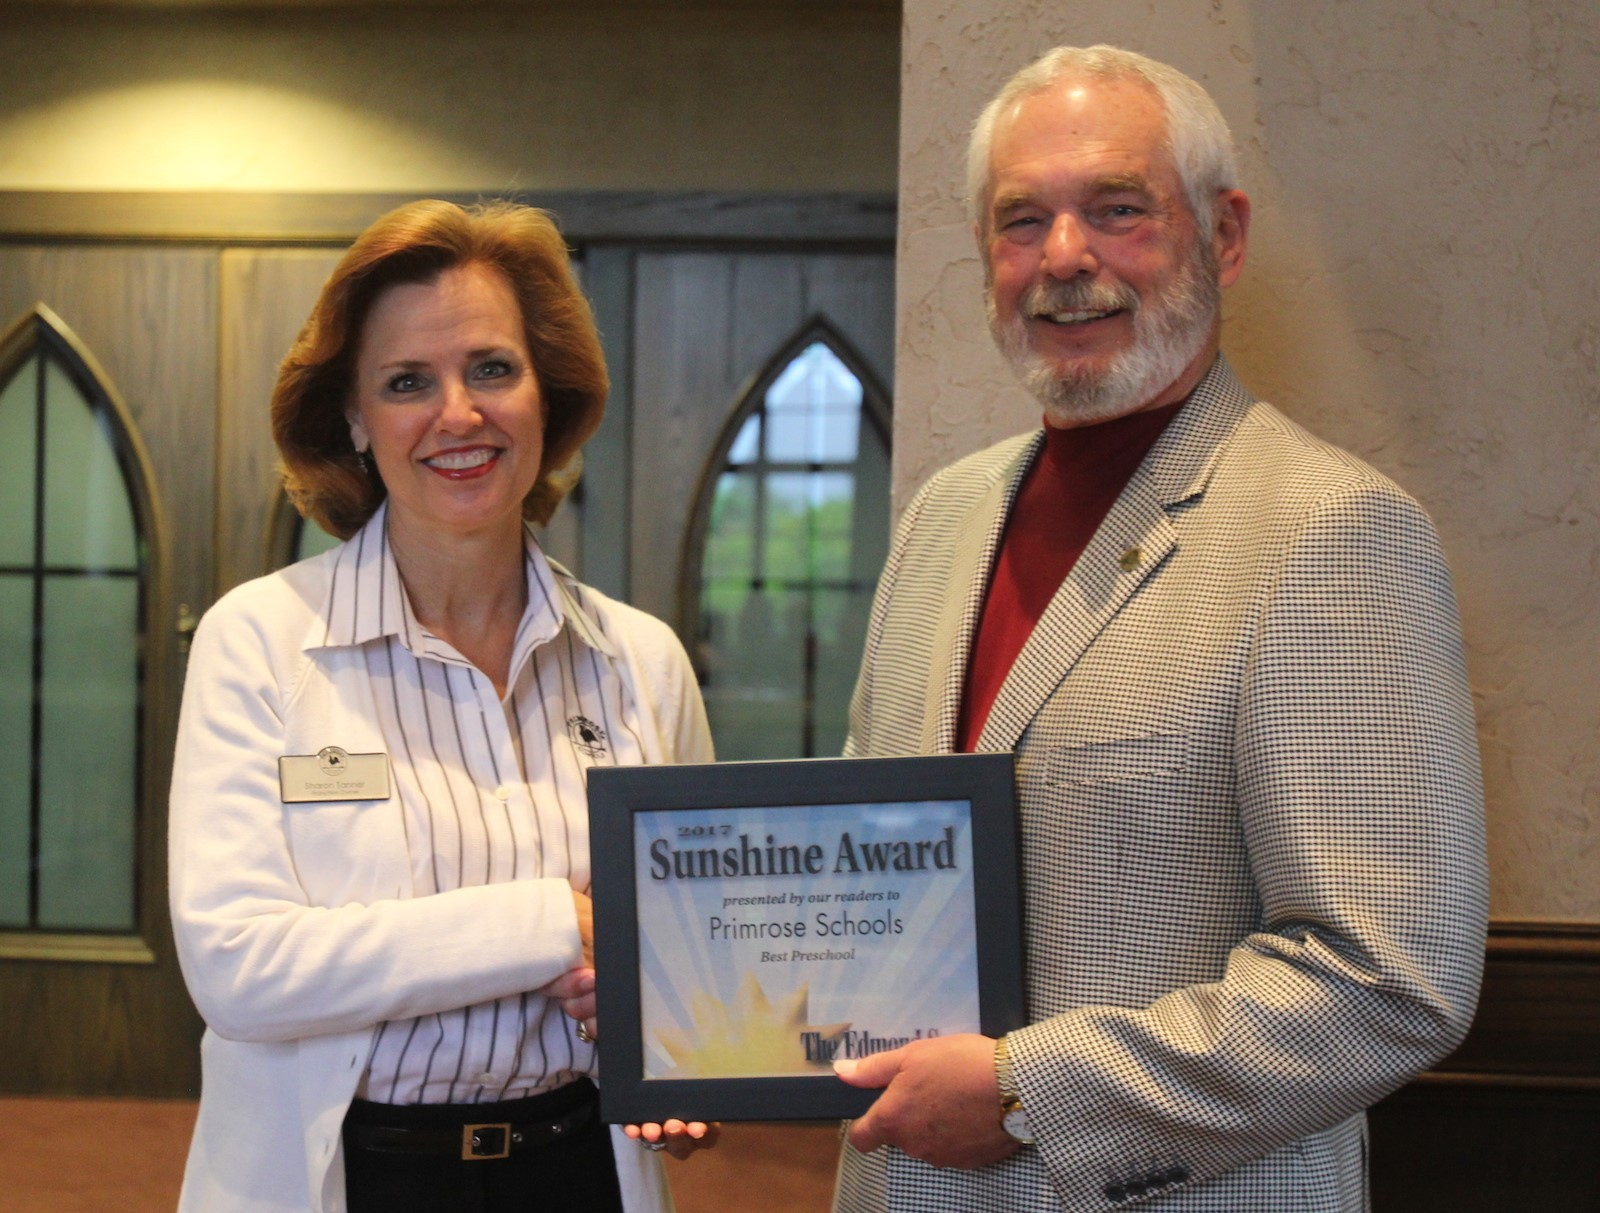 Mrs. Tanner receiving the award from Edmond Mayor, Charles Lamb